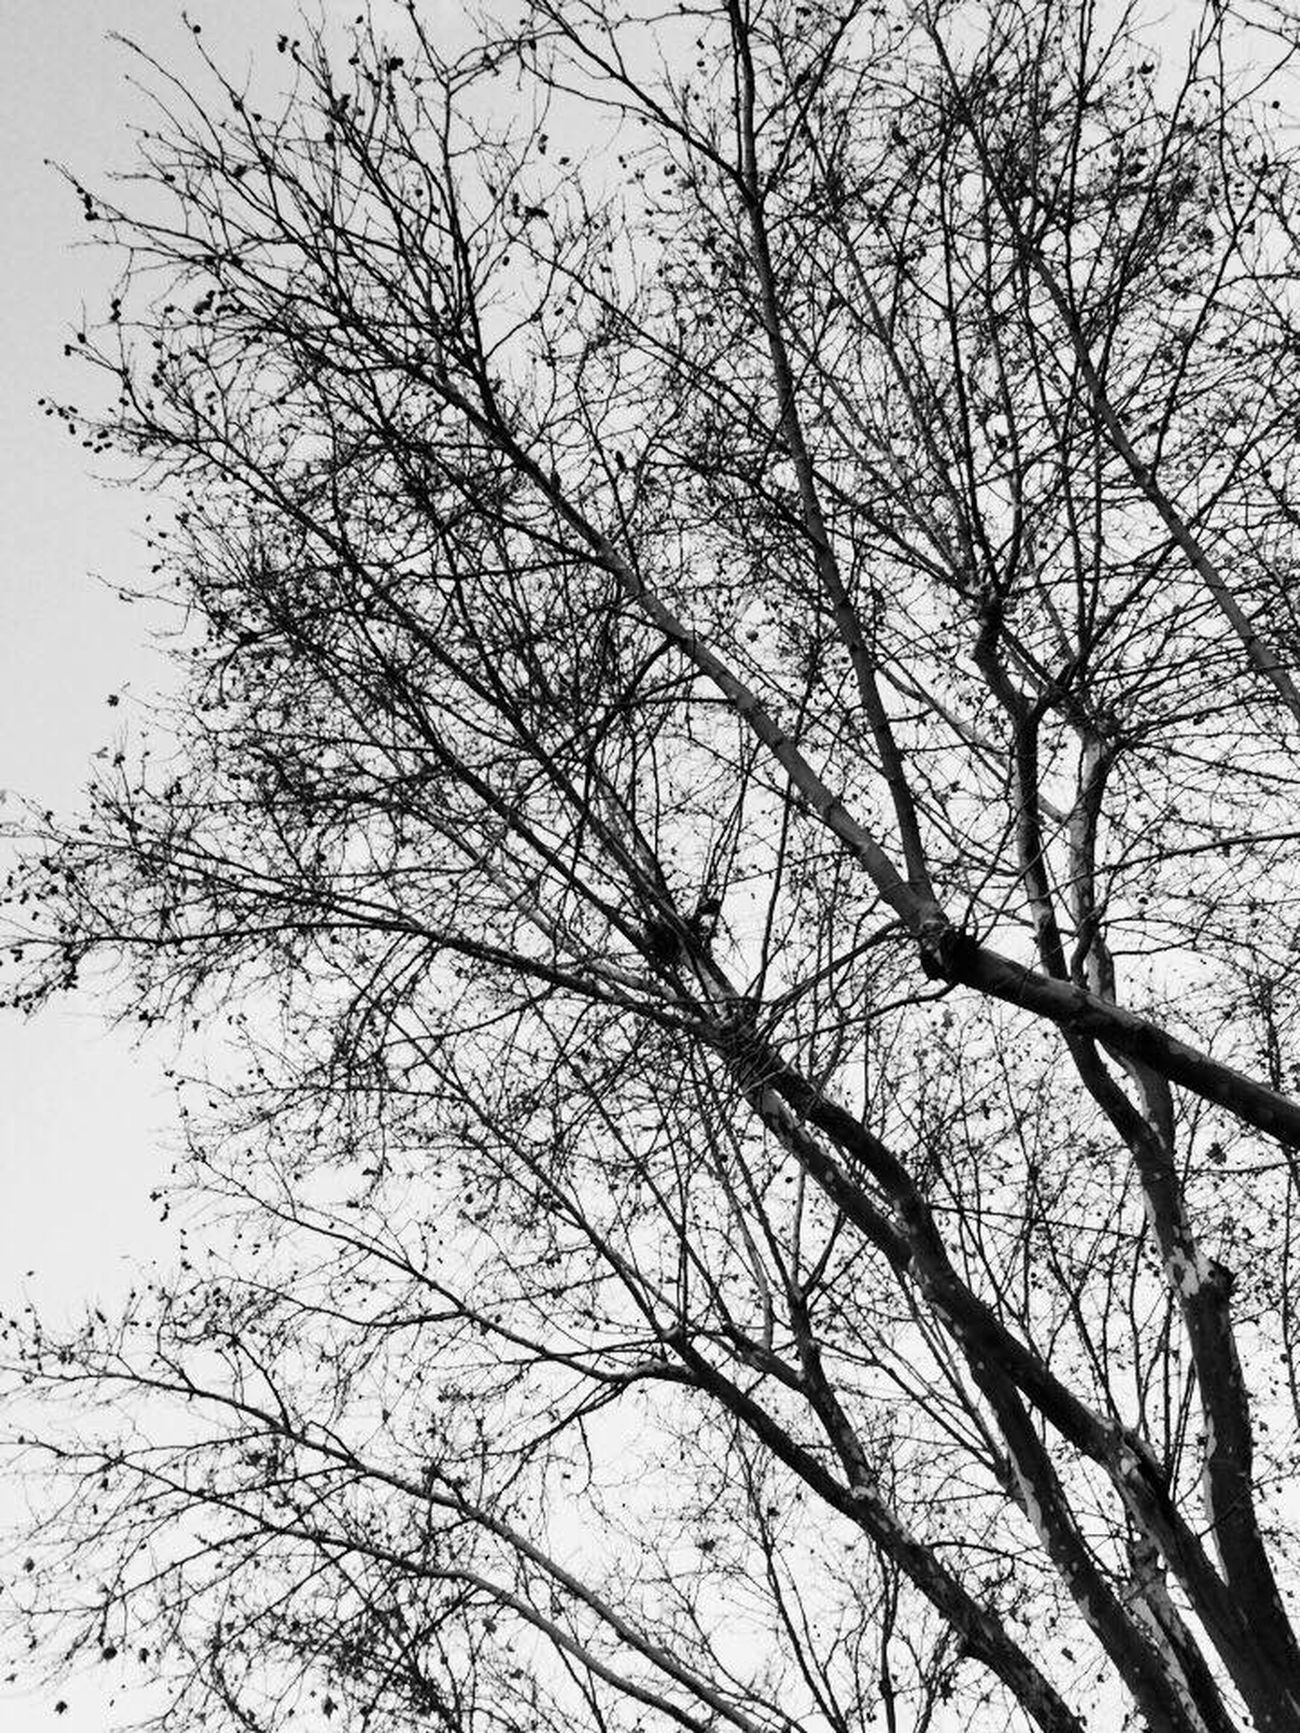 🌳🌲 Nature Tree Beauty In Nature No People Outdoors Grunge Photowalk ArtWork Taking Photos Check This Out Popular Photos Monochrome Photography Nature Backgrounds Studio Shot Monochrome Photography Todays Hot Look Darkness And Light Blackandwhite OpenEdit Cityscapes Black And White Lights Getting Inspired